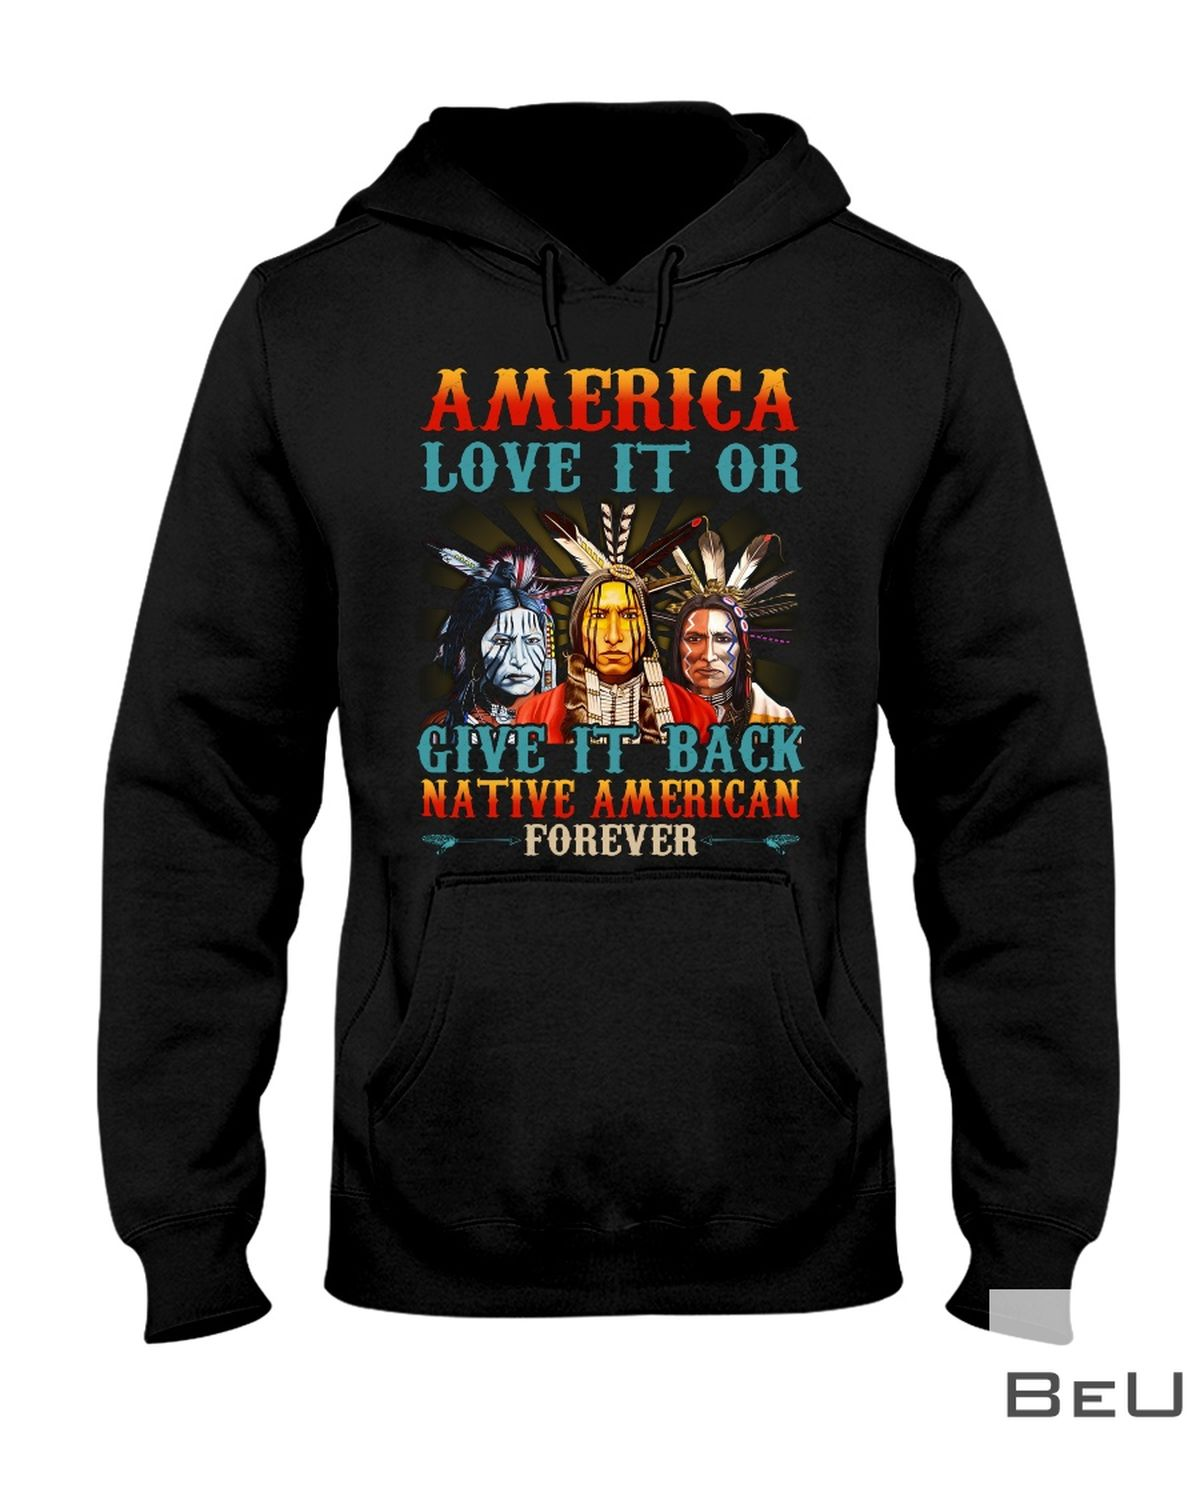 America Love It Or Give It Back Native American Forever Shirtz